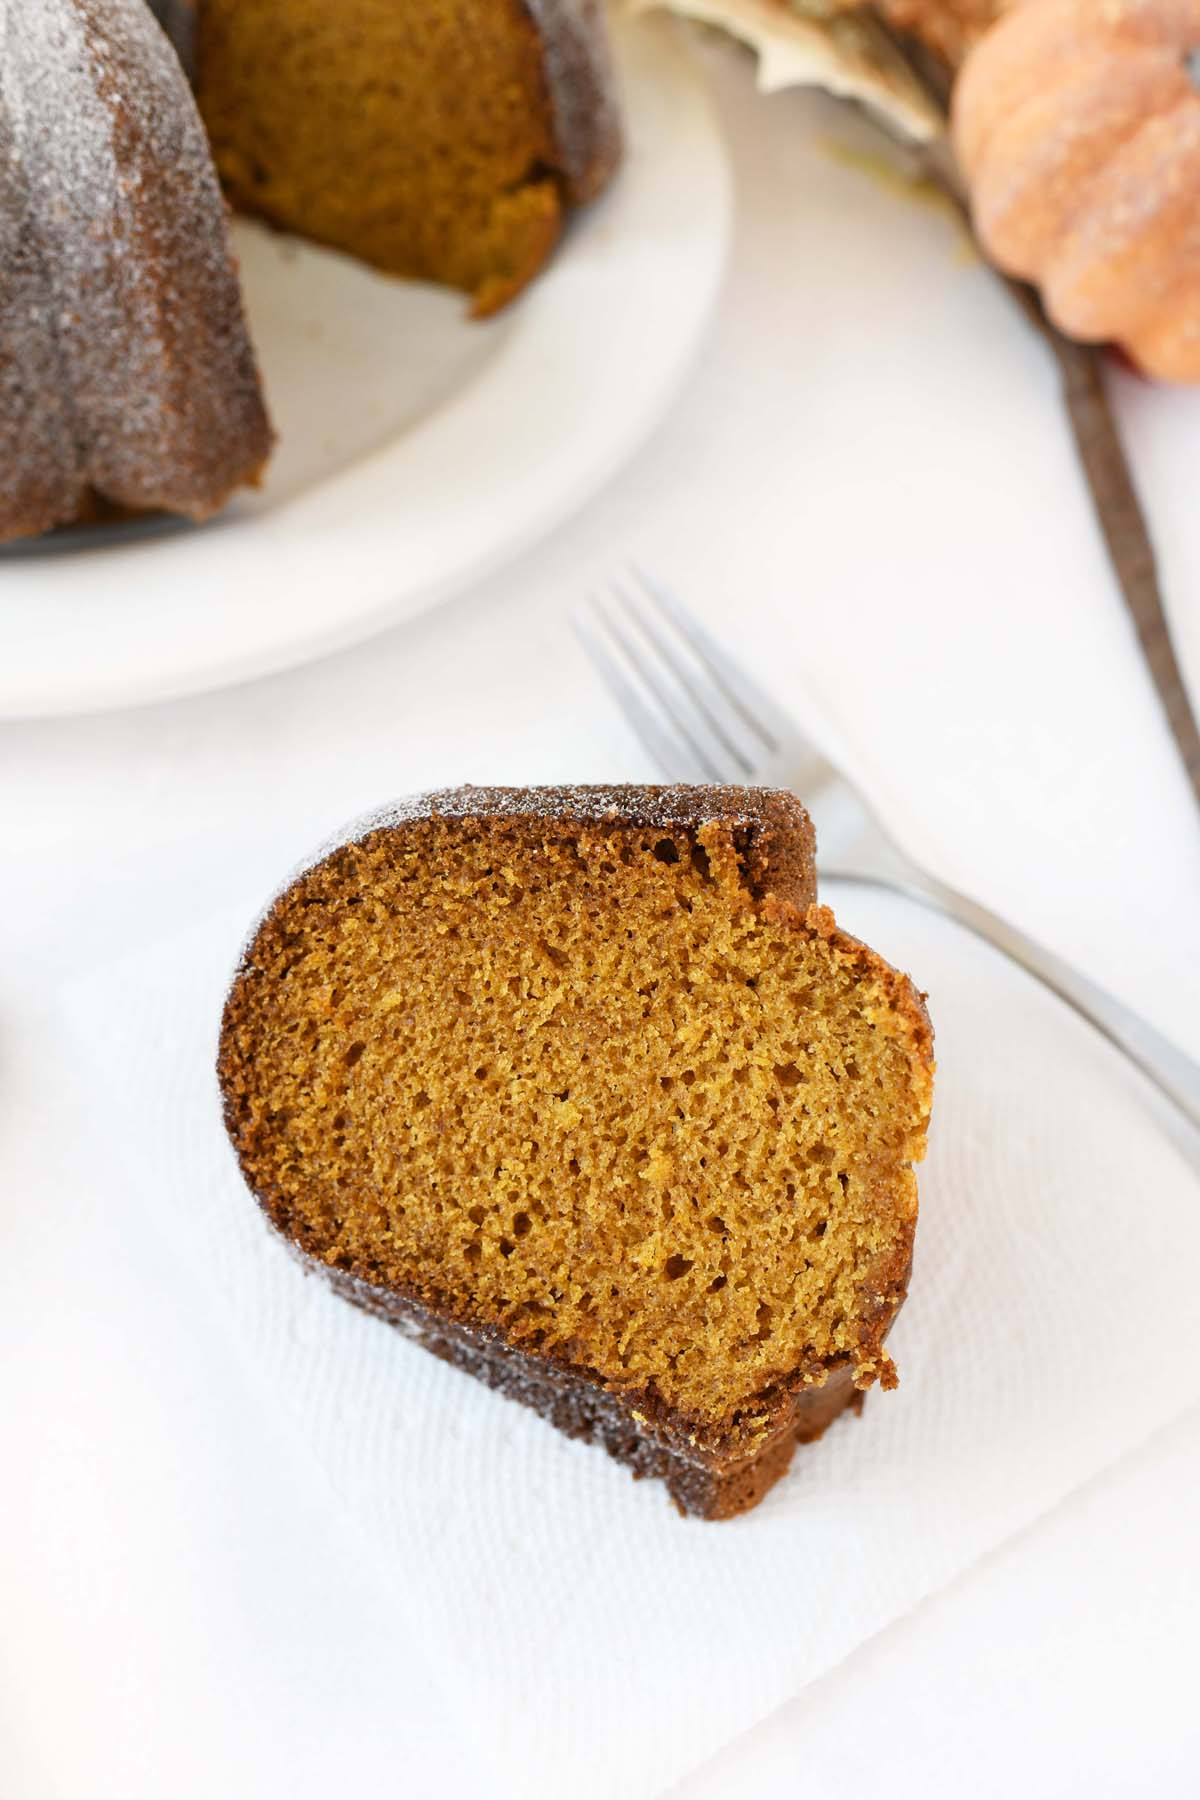 Slice of Pumpkin Cake on a small white plate.